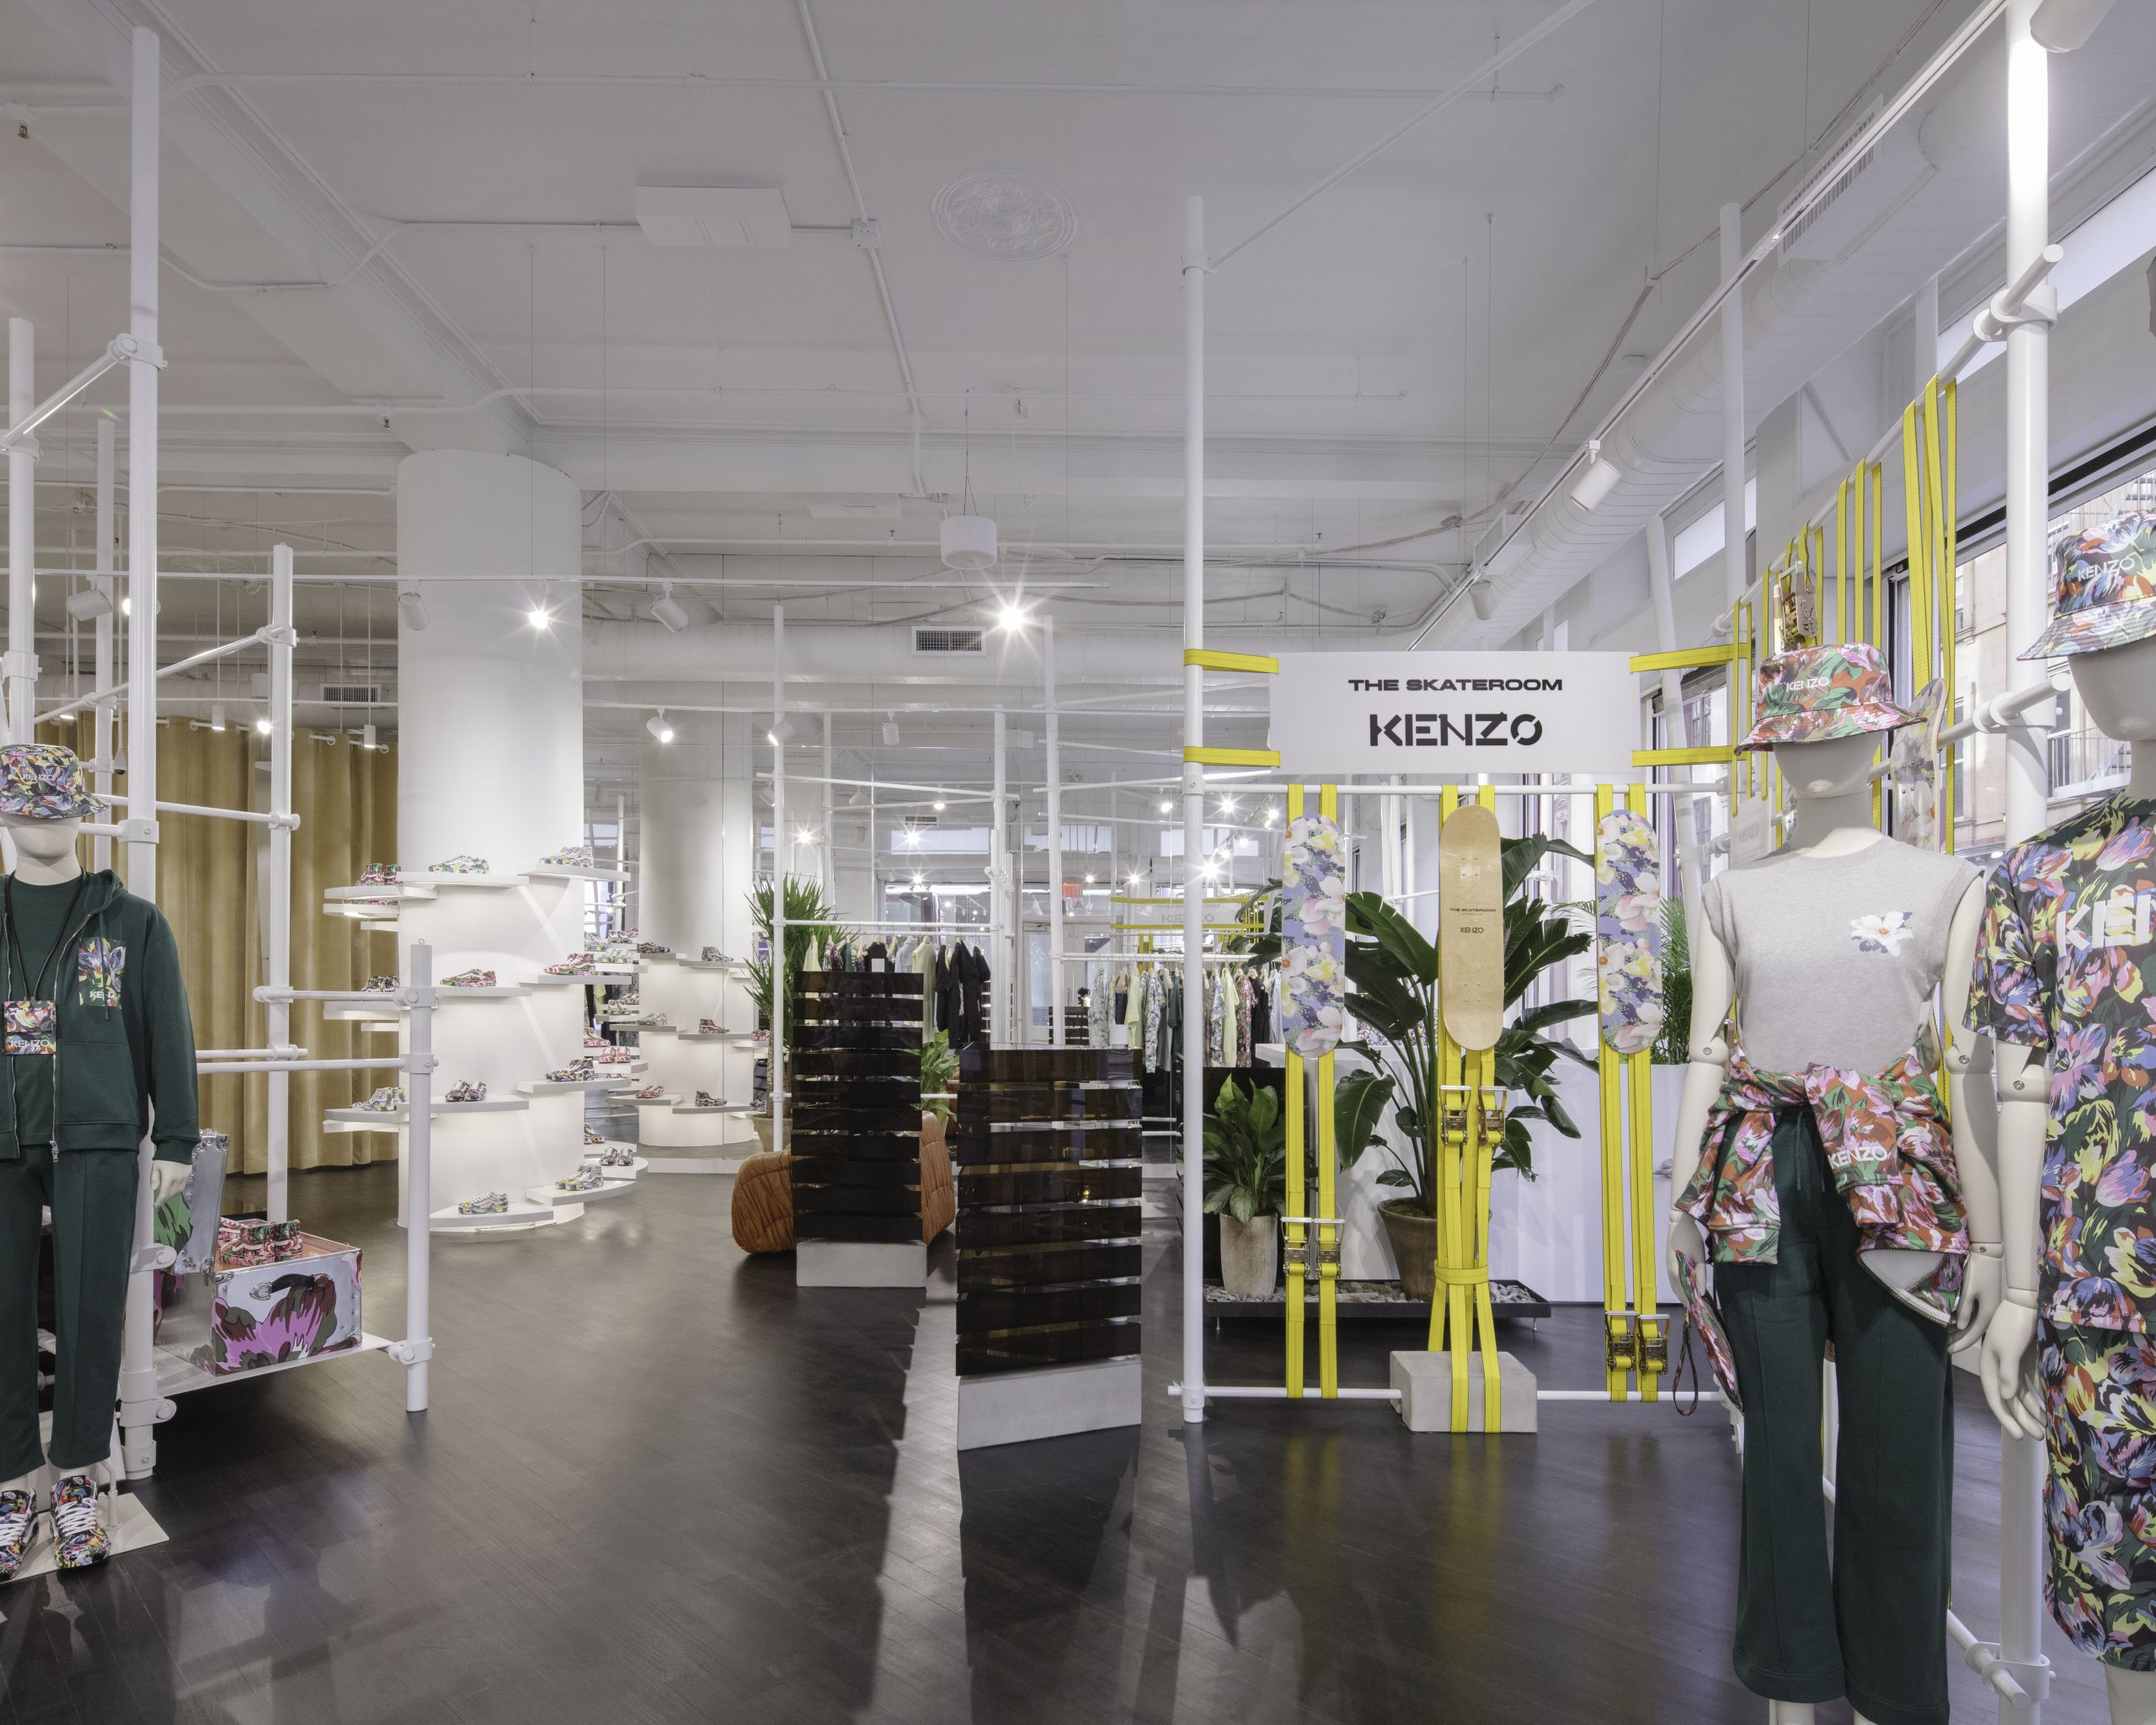 Kenzo opens new store in New York city at SoHo